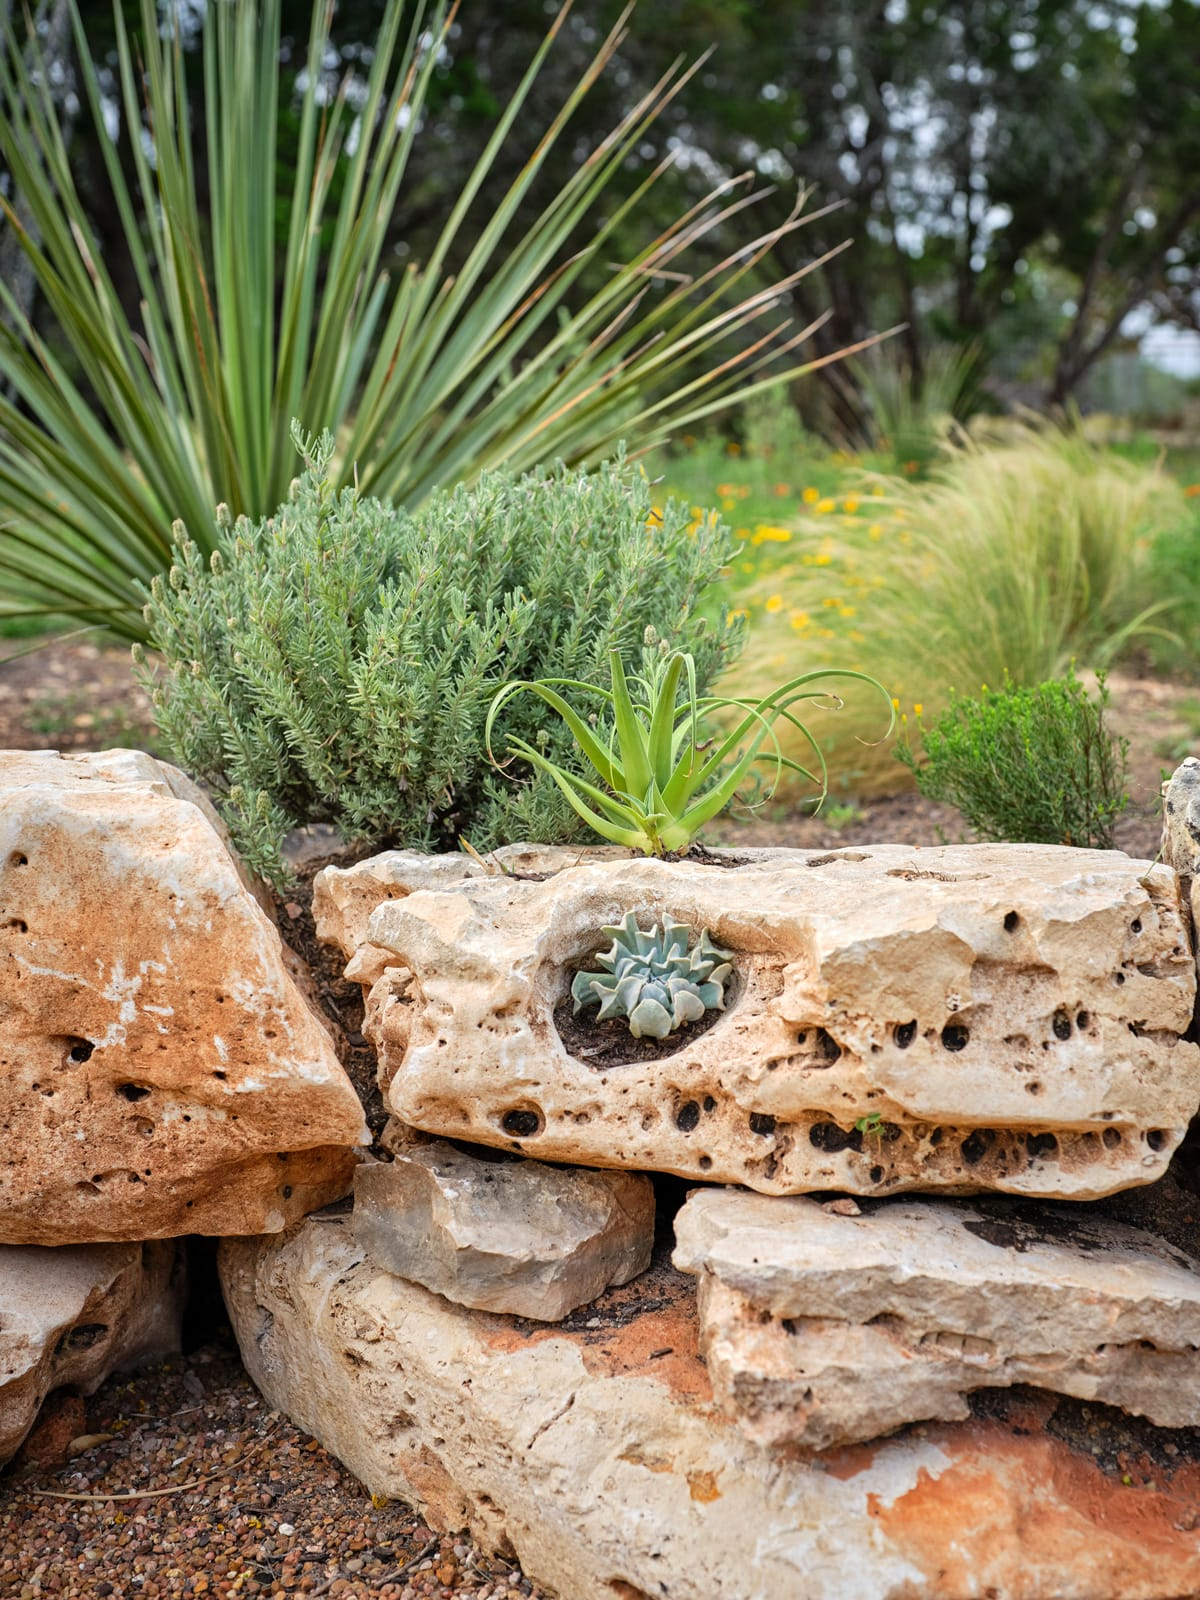 Doehne Oaks sustainable landscape design in New Braunfels, TX by LUSH GreenScape Design